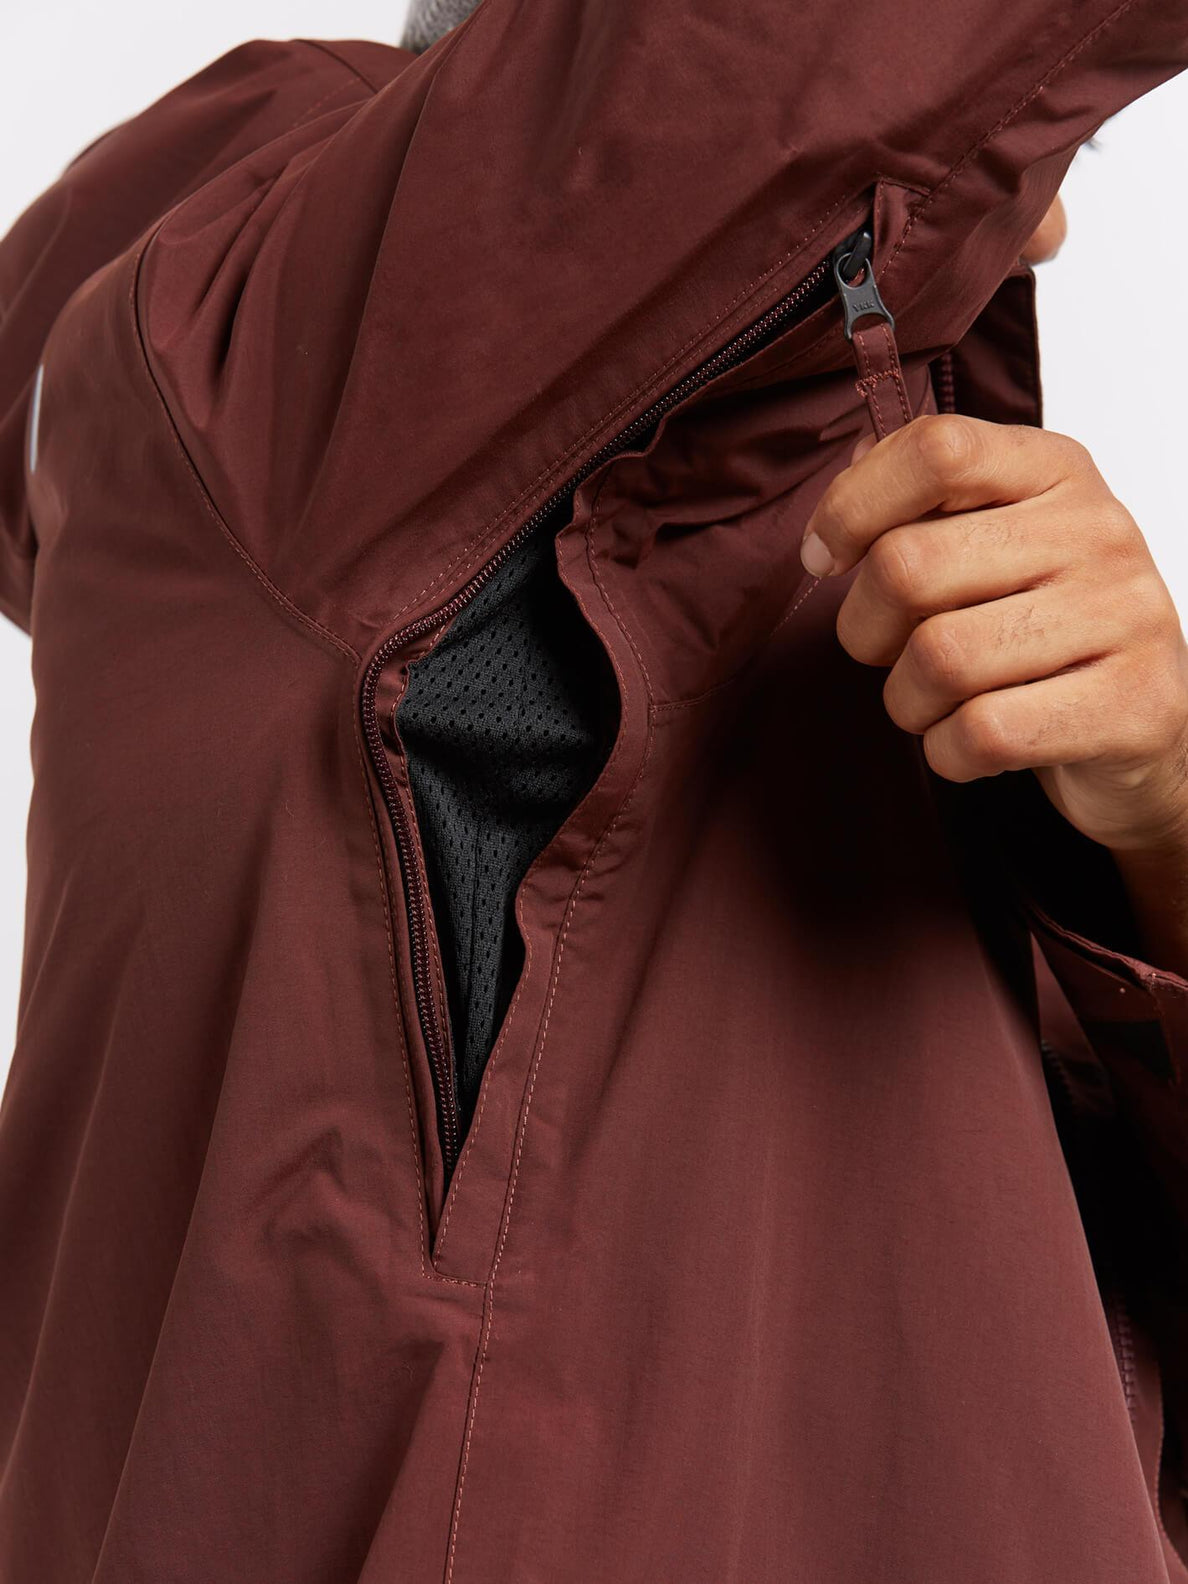 L Insulated Gore-tex® Jacket In Burnt Red, Alternate View